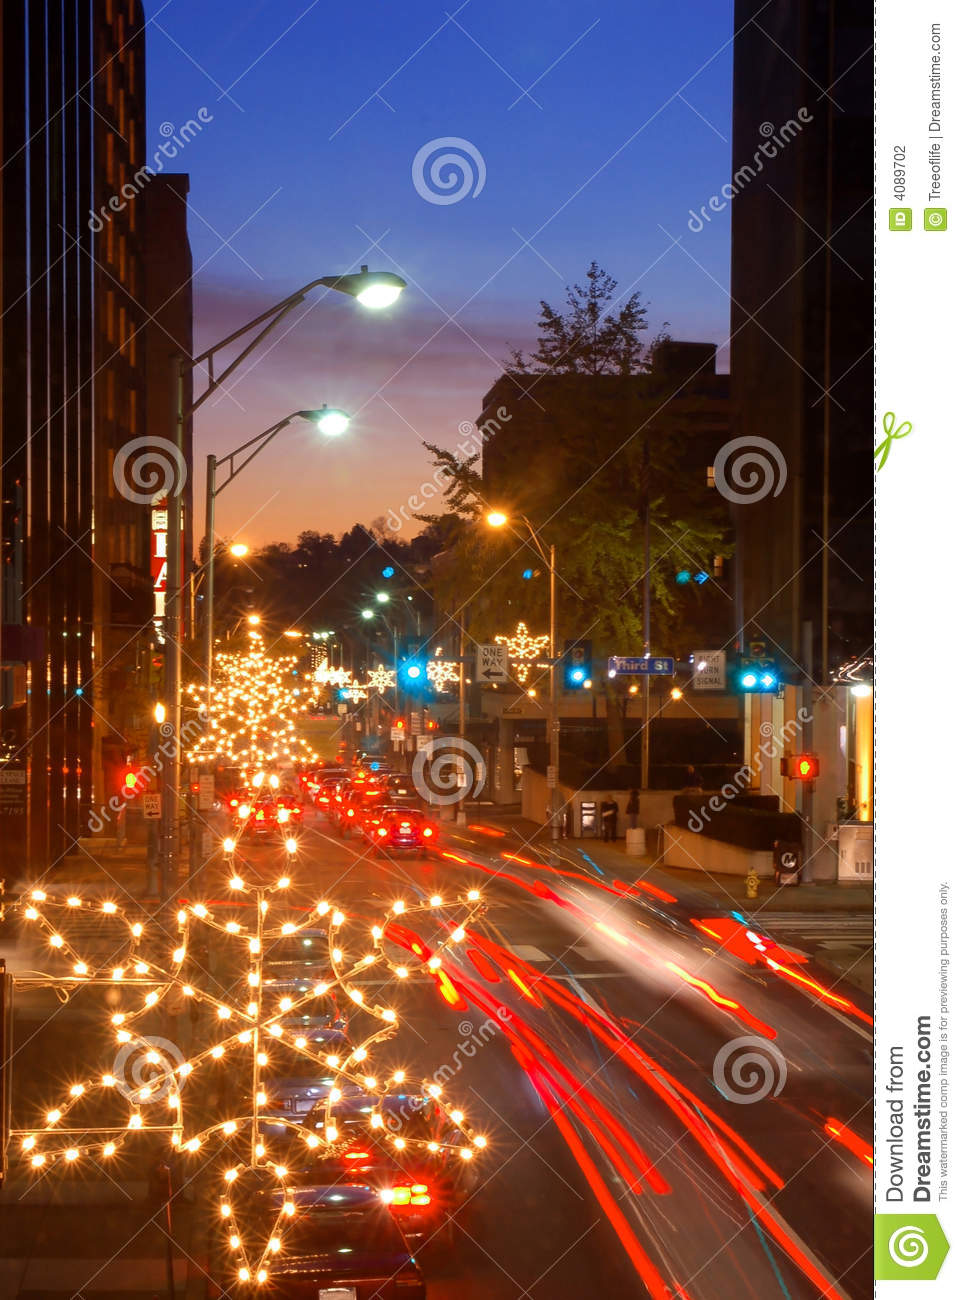 Holiday traffic in the city